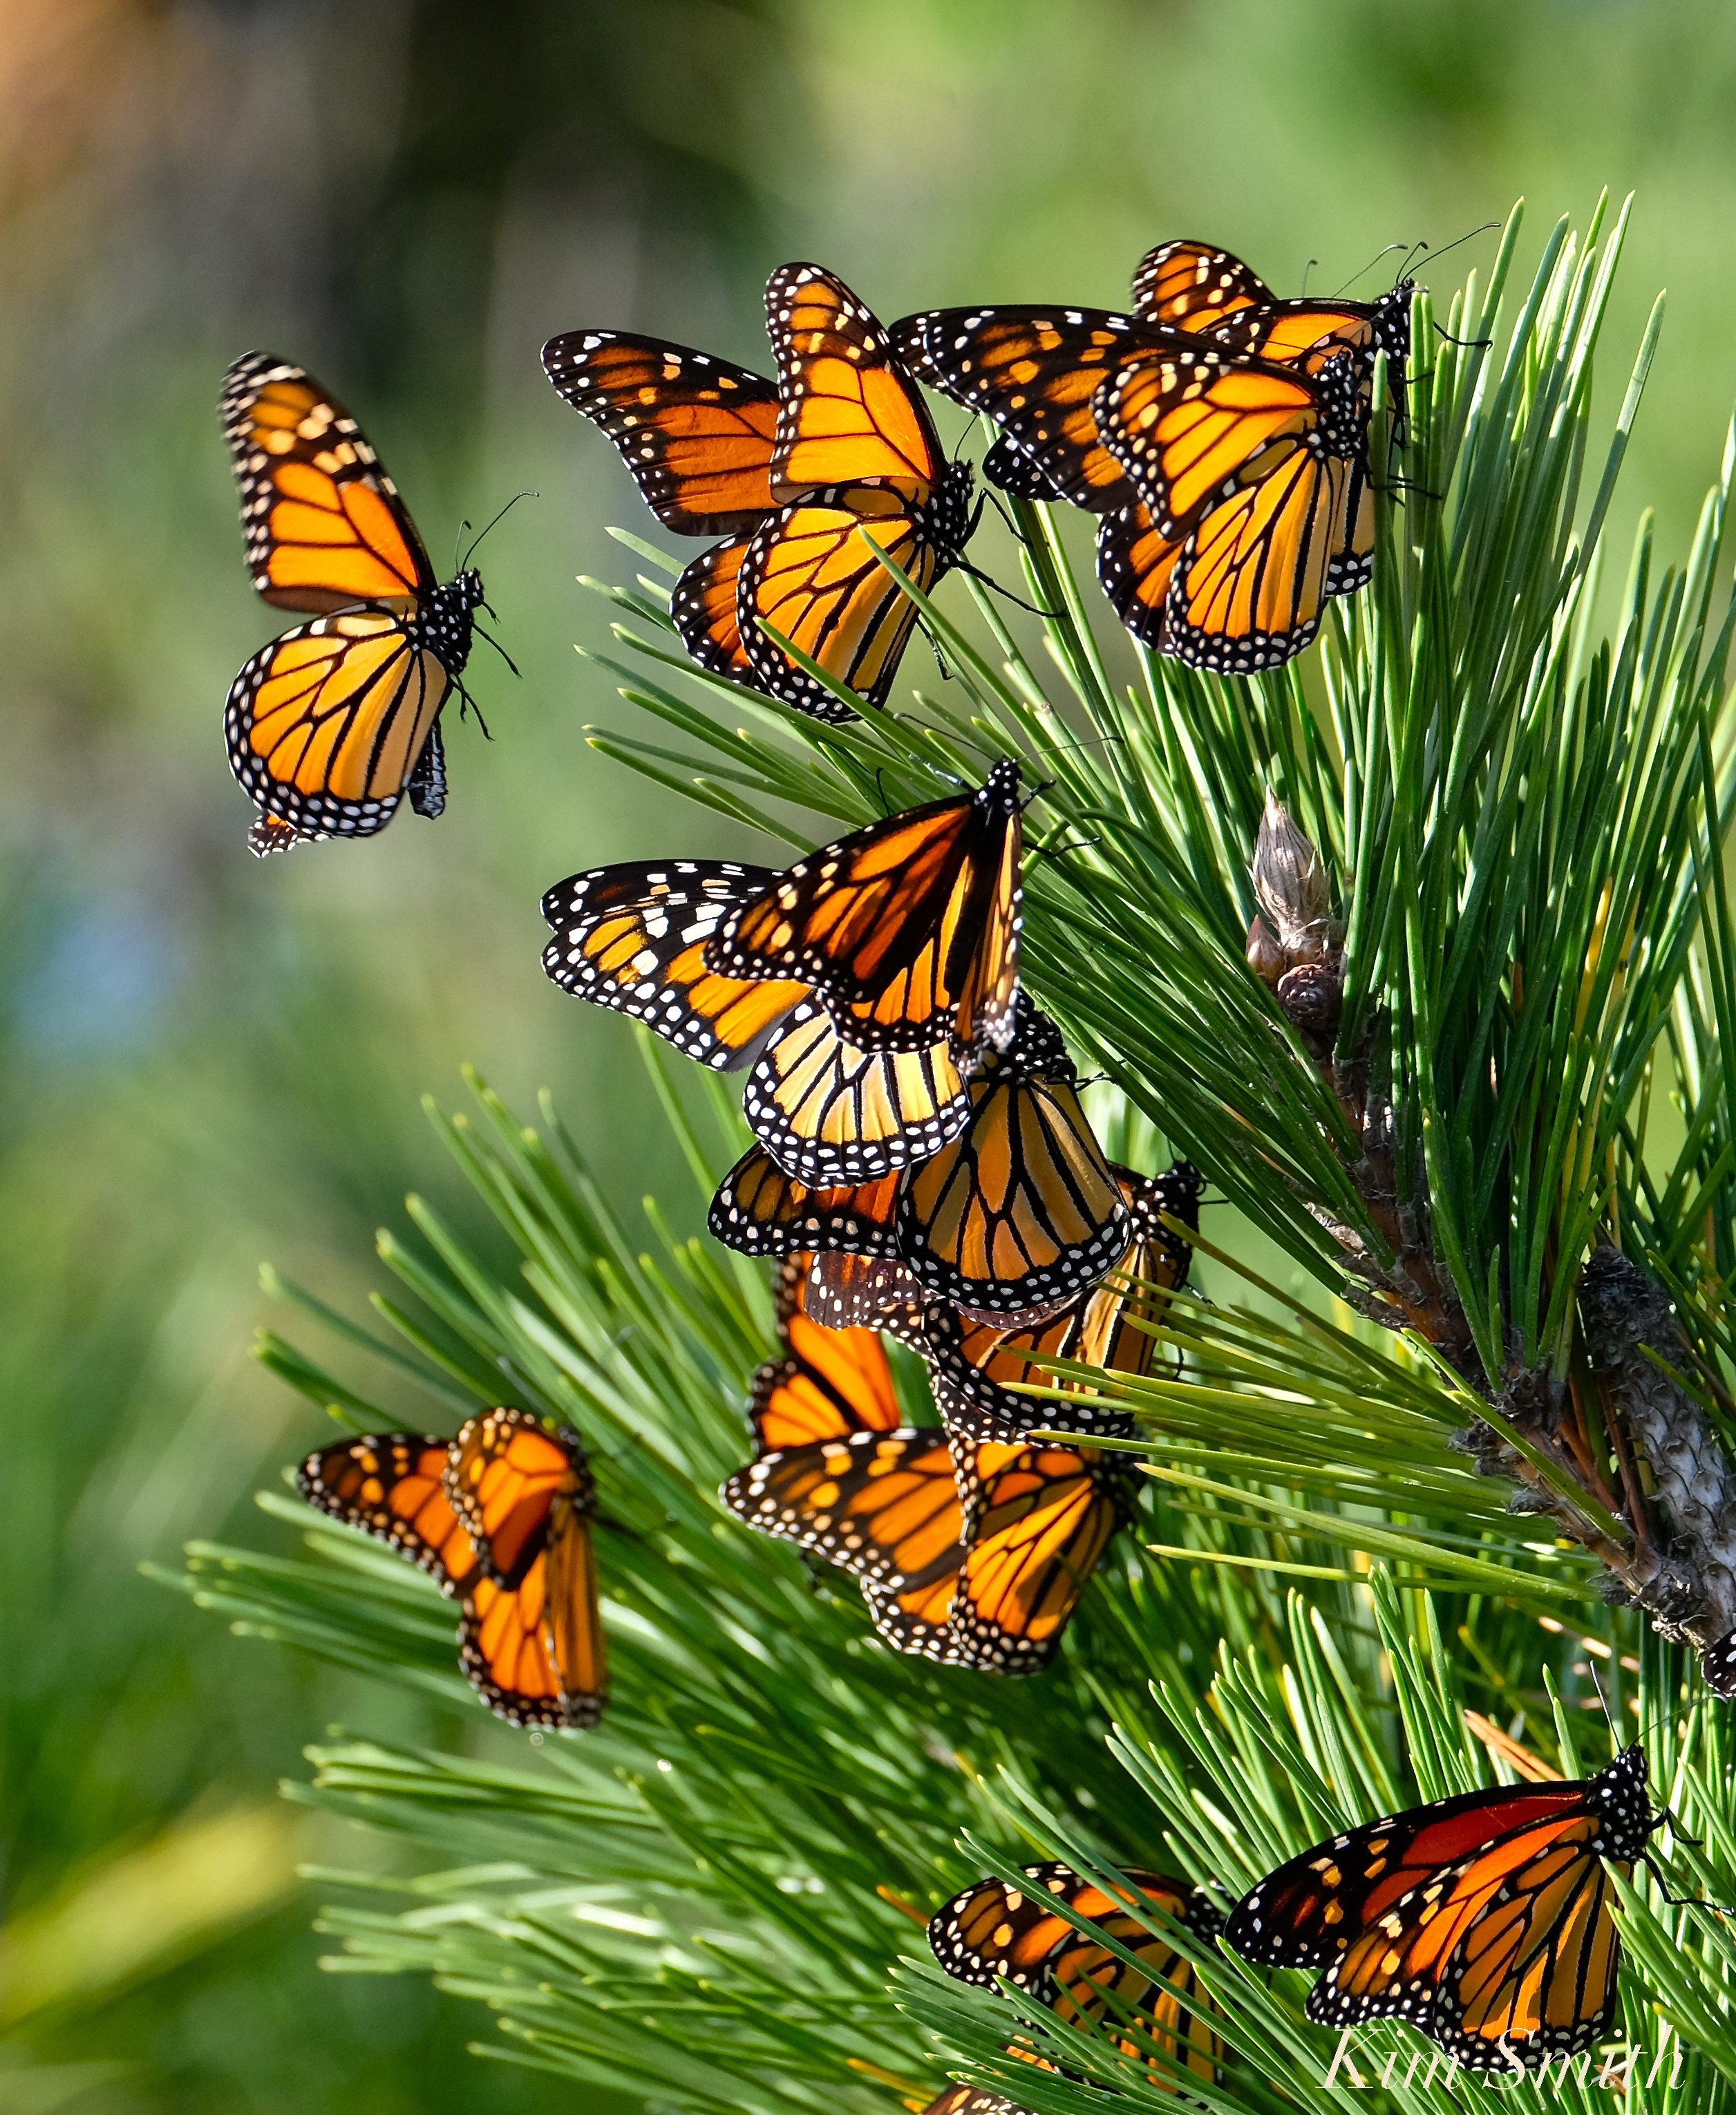 Monarch Butterfly Migration | GoodMorningGloucester - photo#21